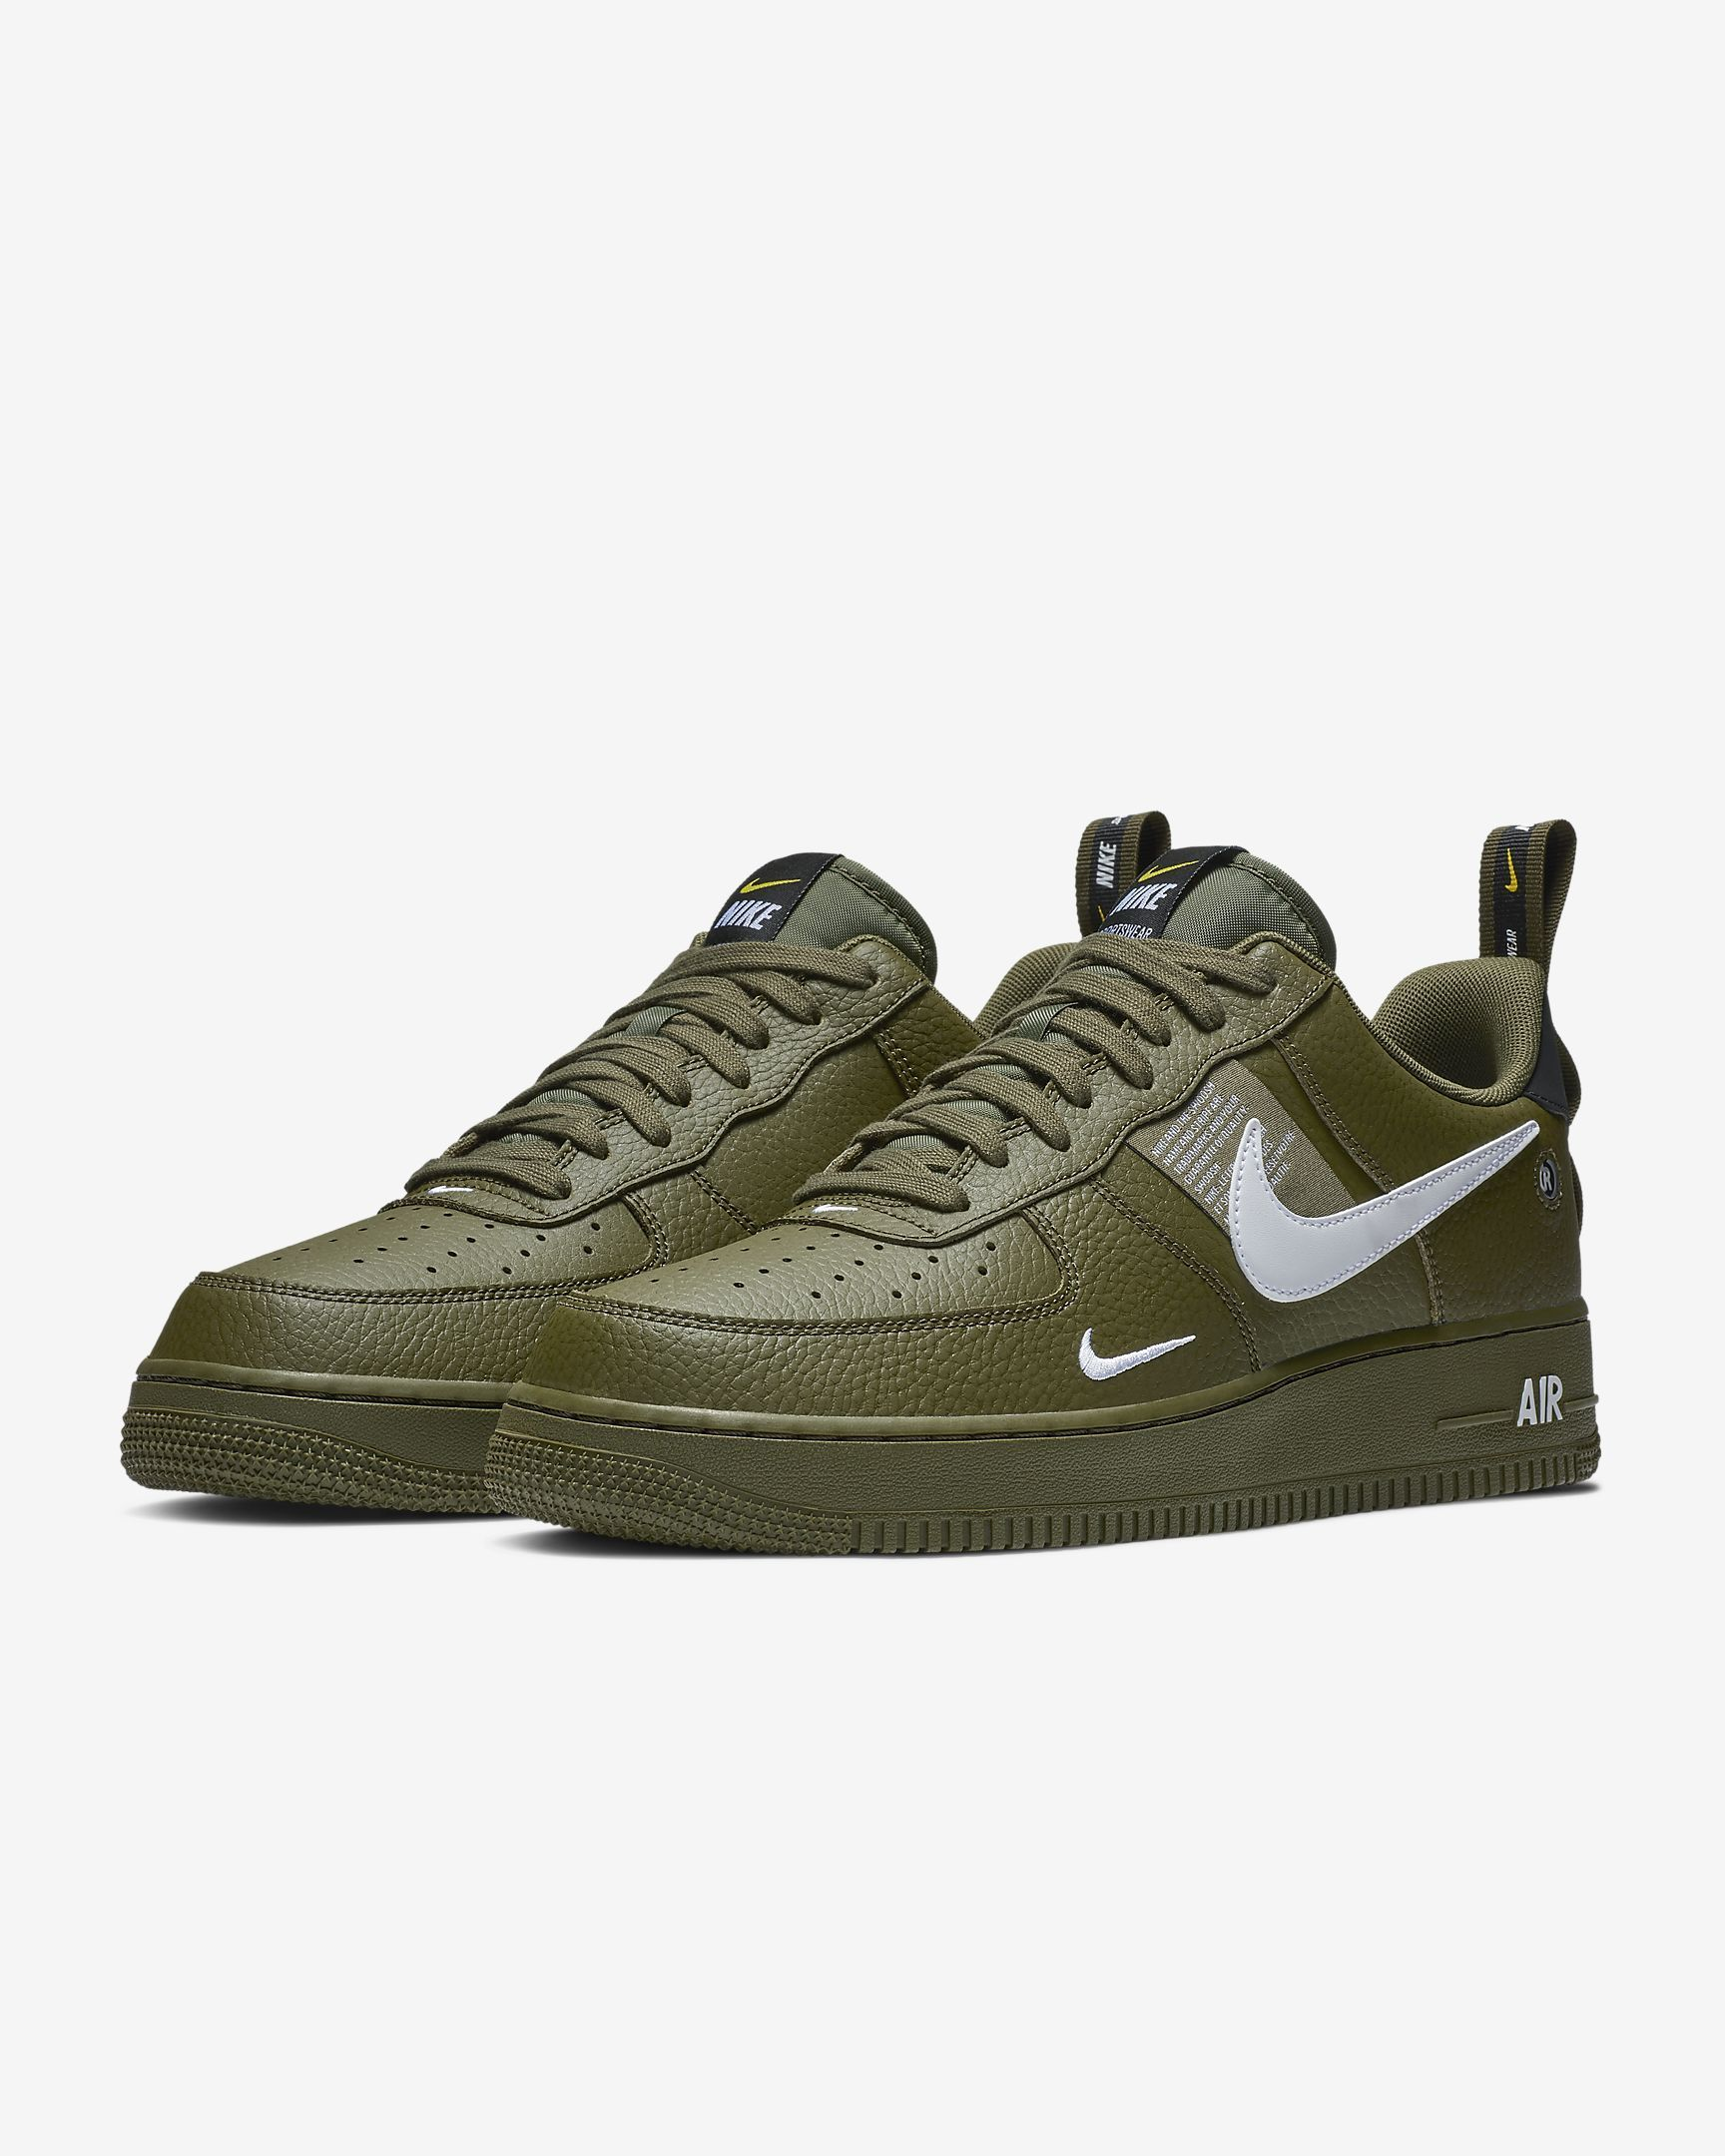 81a0975305d Nike Air Force 1  07 LV8 Utility Men s Shoe